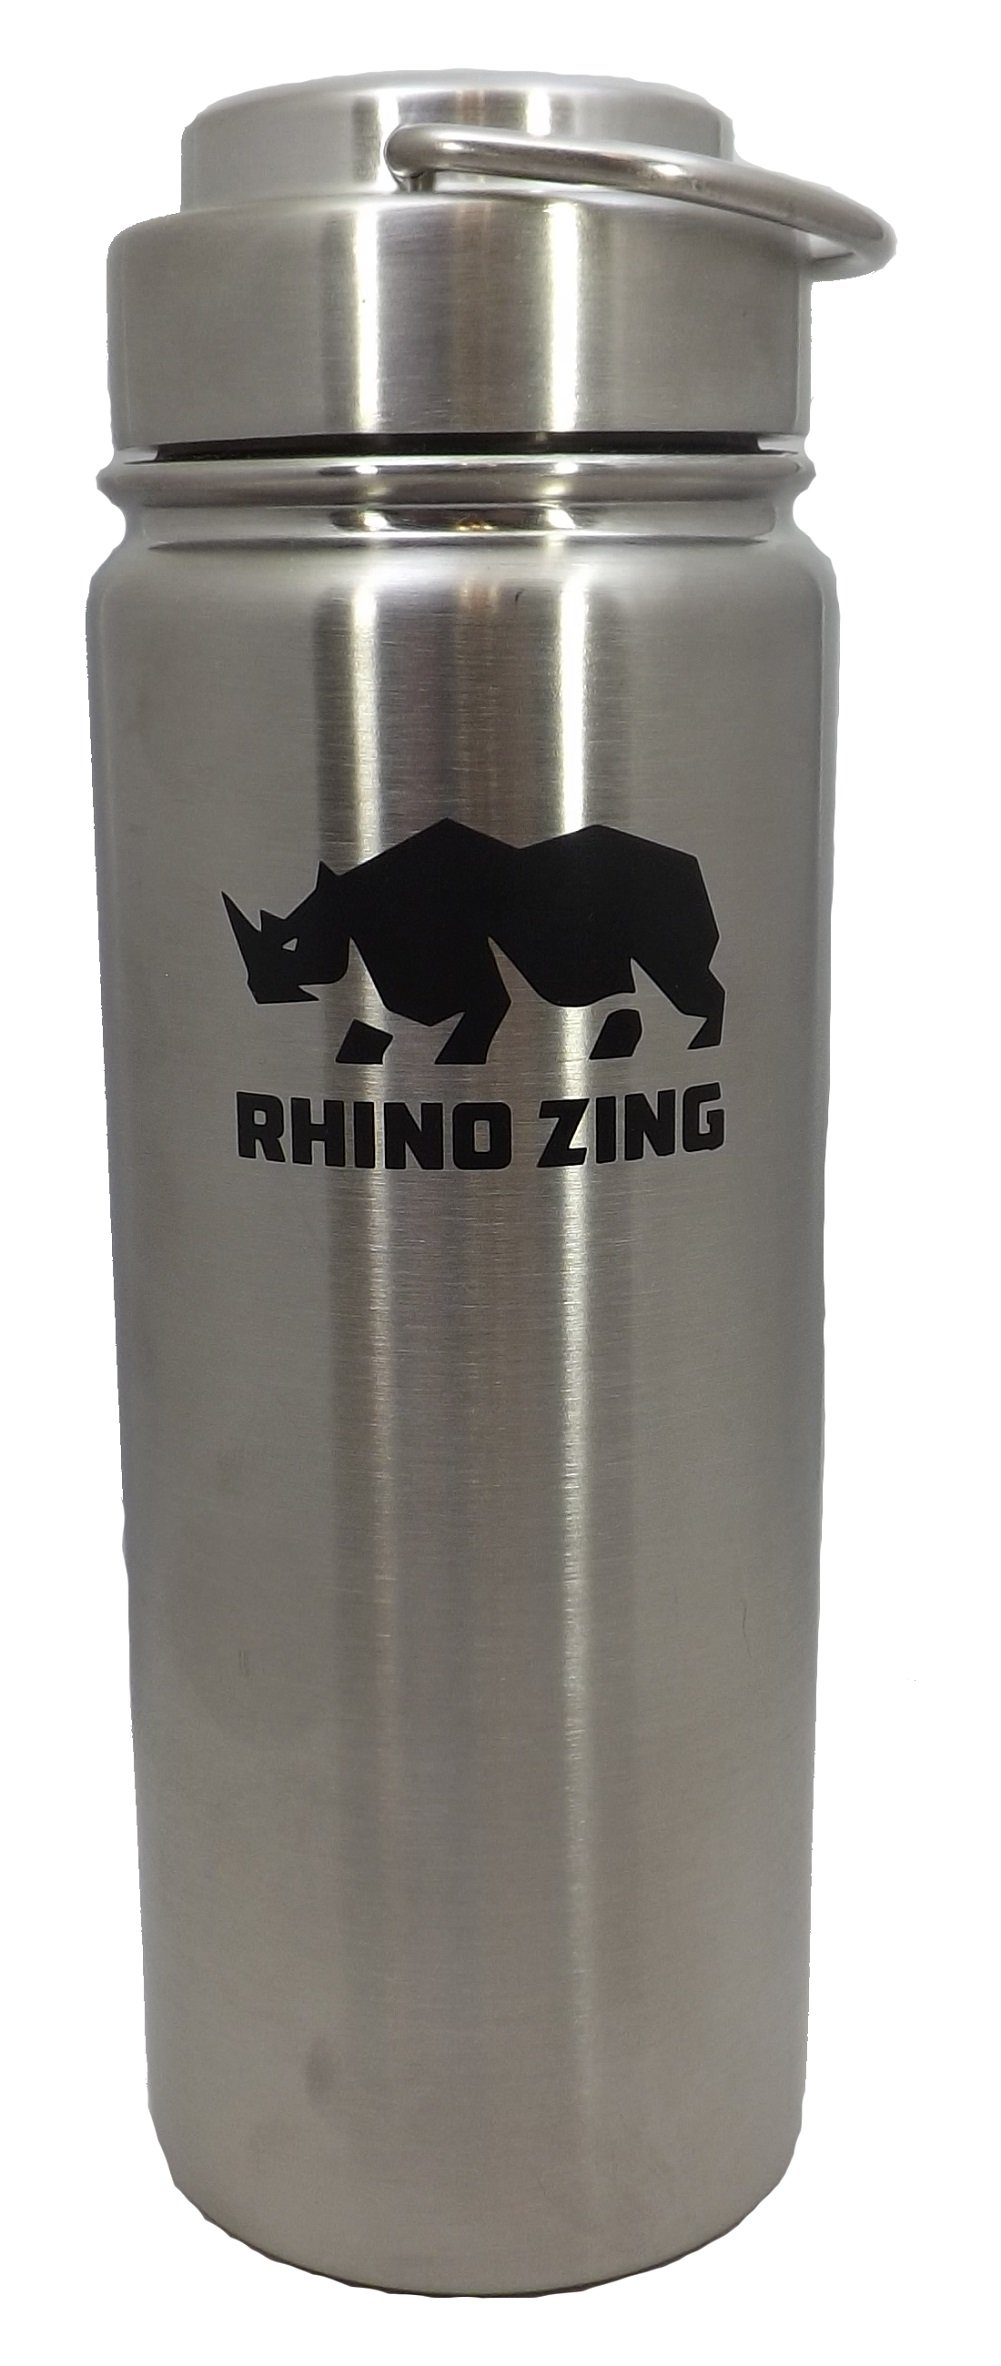 Rhino Zing 18-Ounce Beer Growler Stainless Steel Water Bottle with Stainless Steel Lid. Insulated, Wide Mouth by Rhino Zing (Image #3)